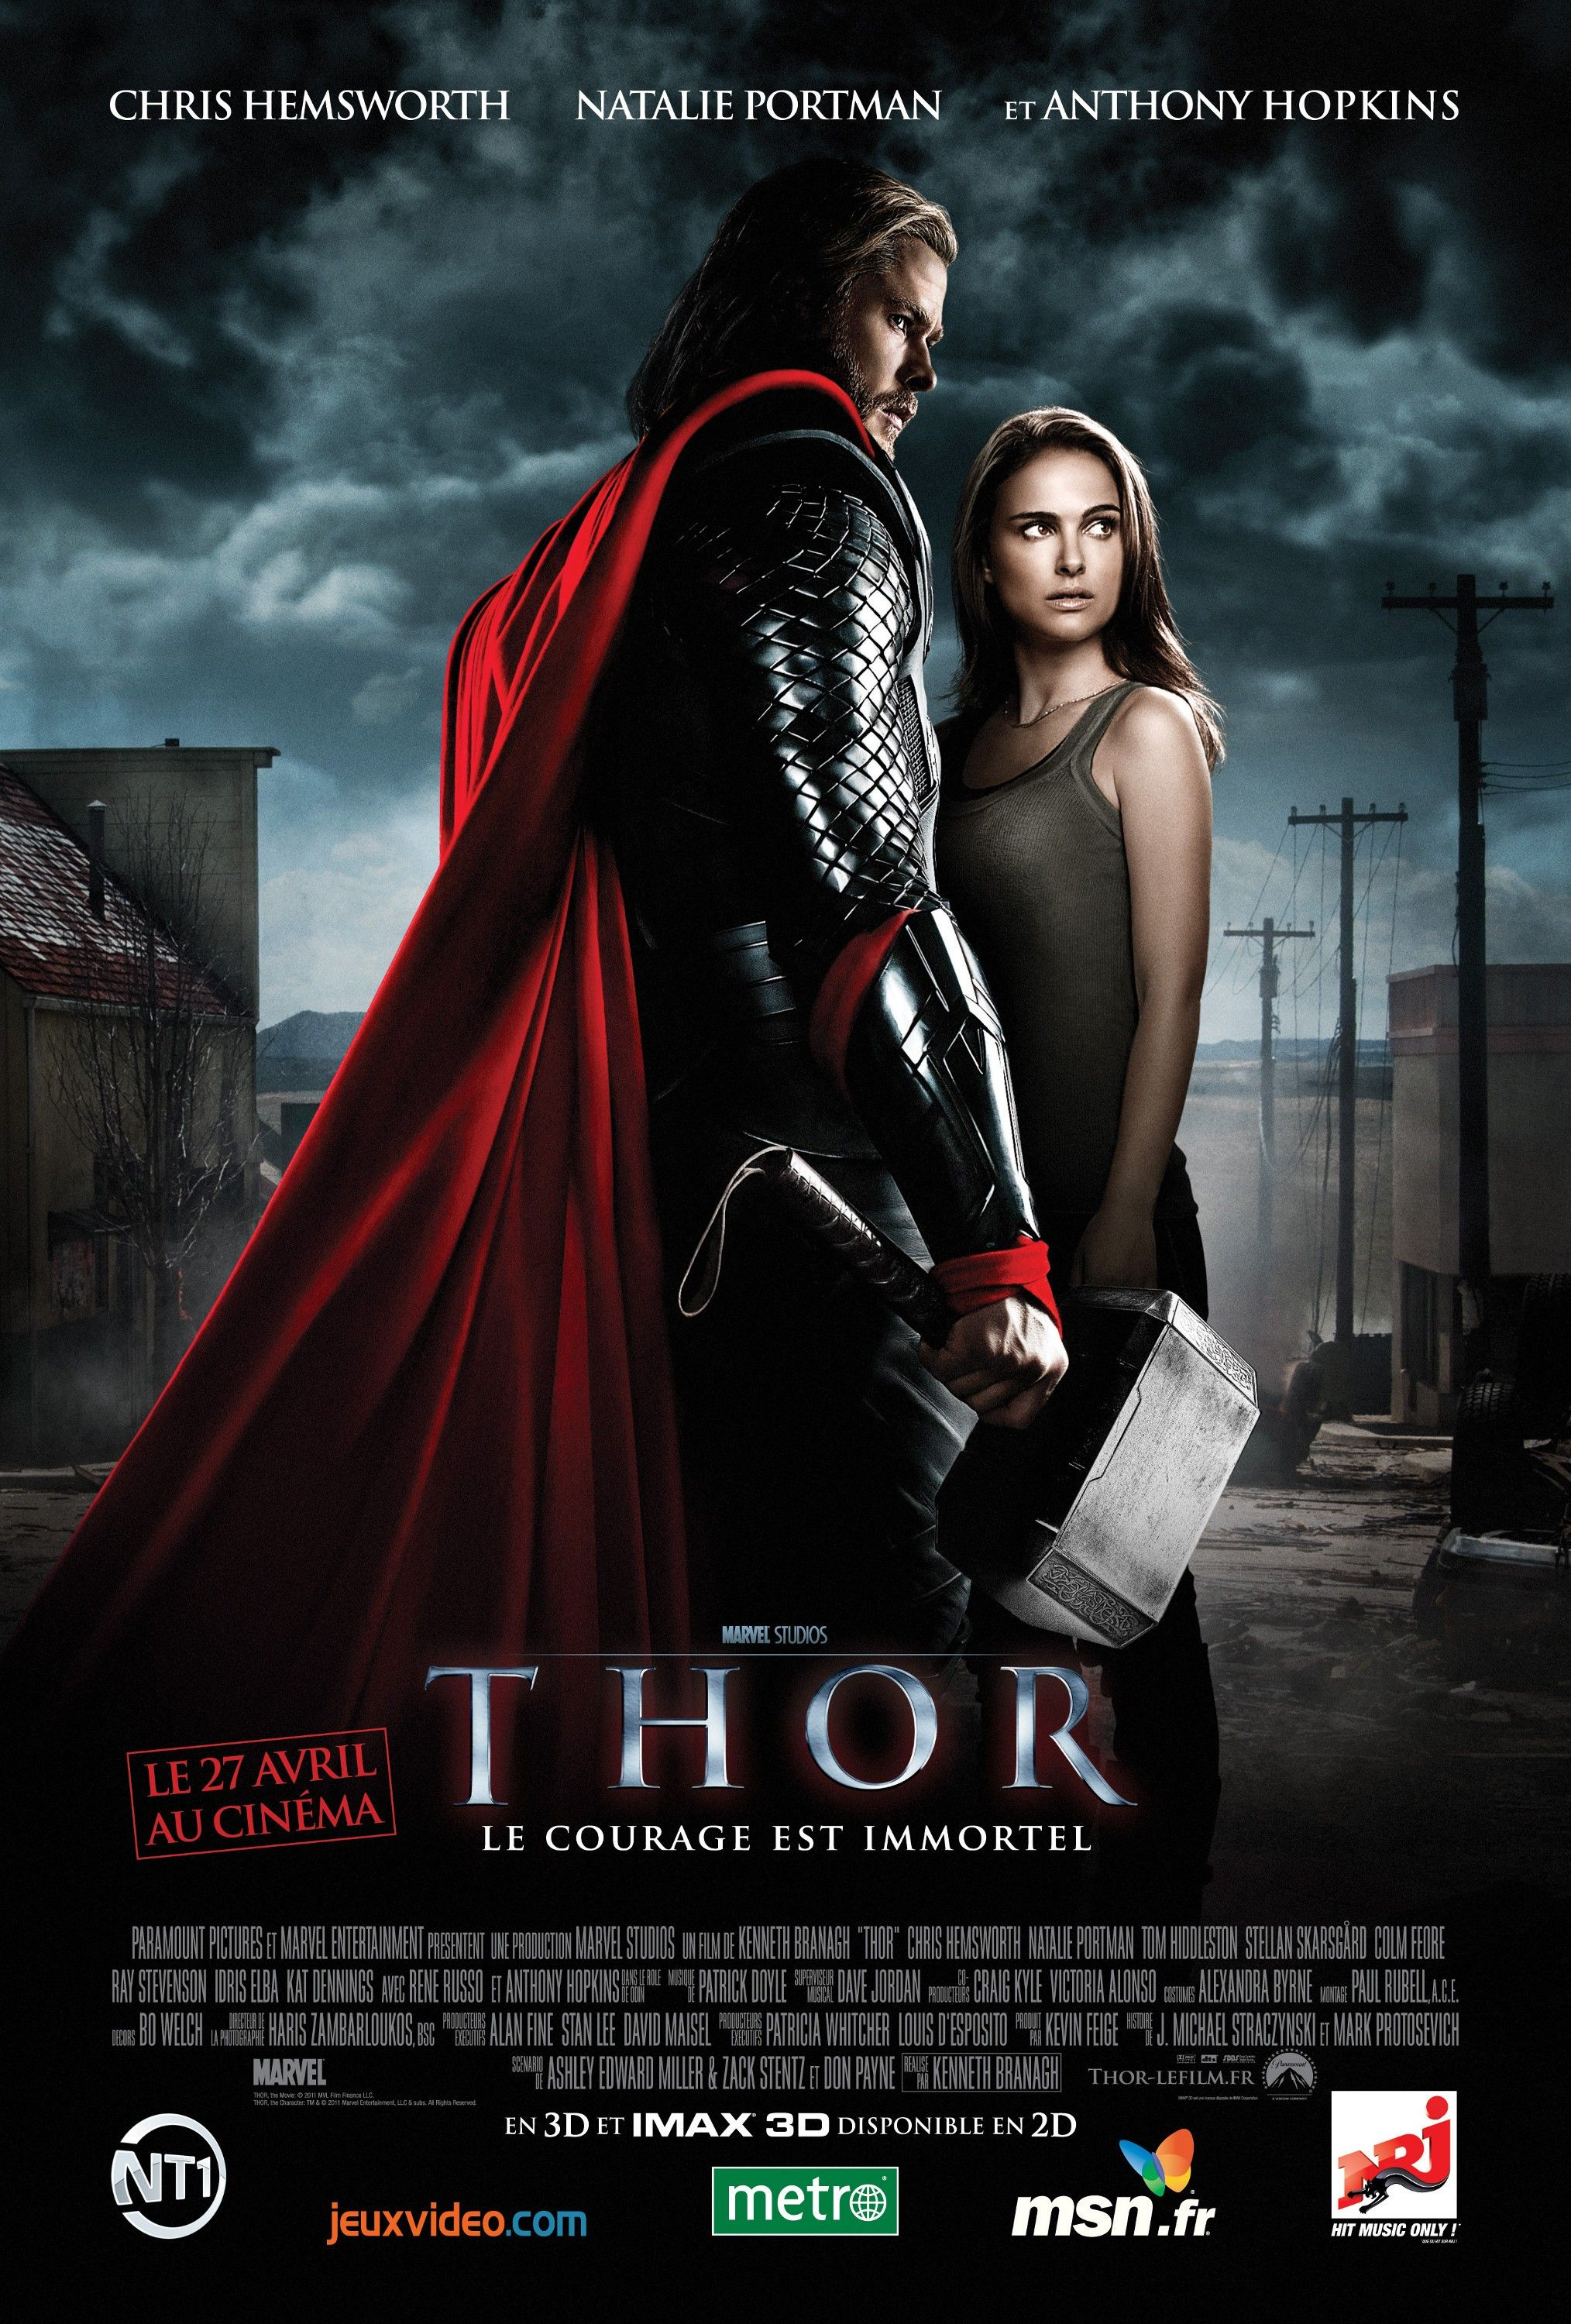 Thor movie poster wallpapers top free thor movie poster - Movie poster wallpaper ...